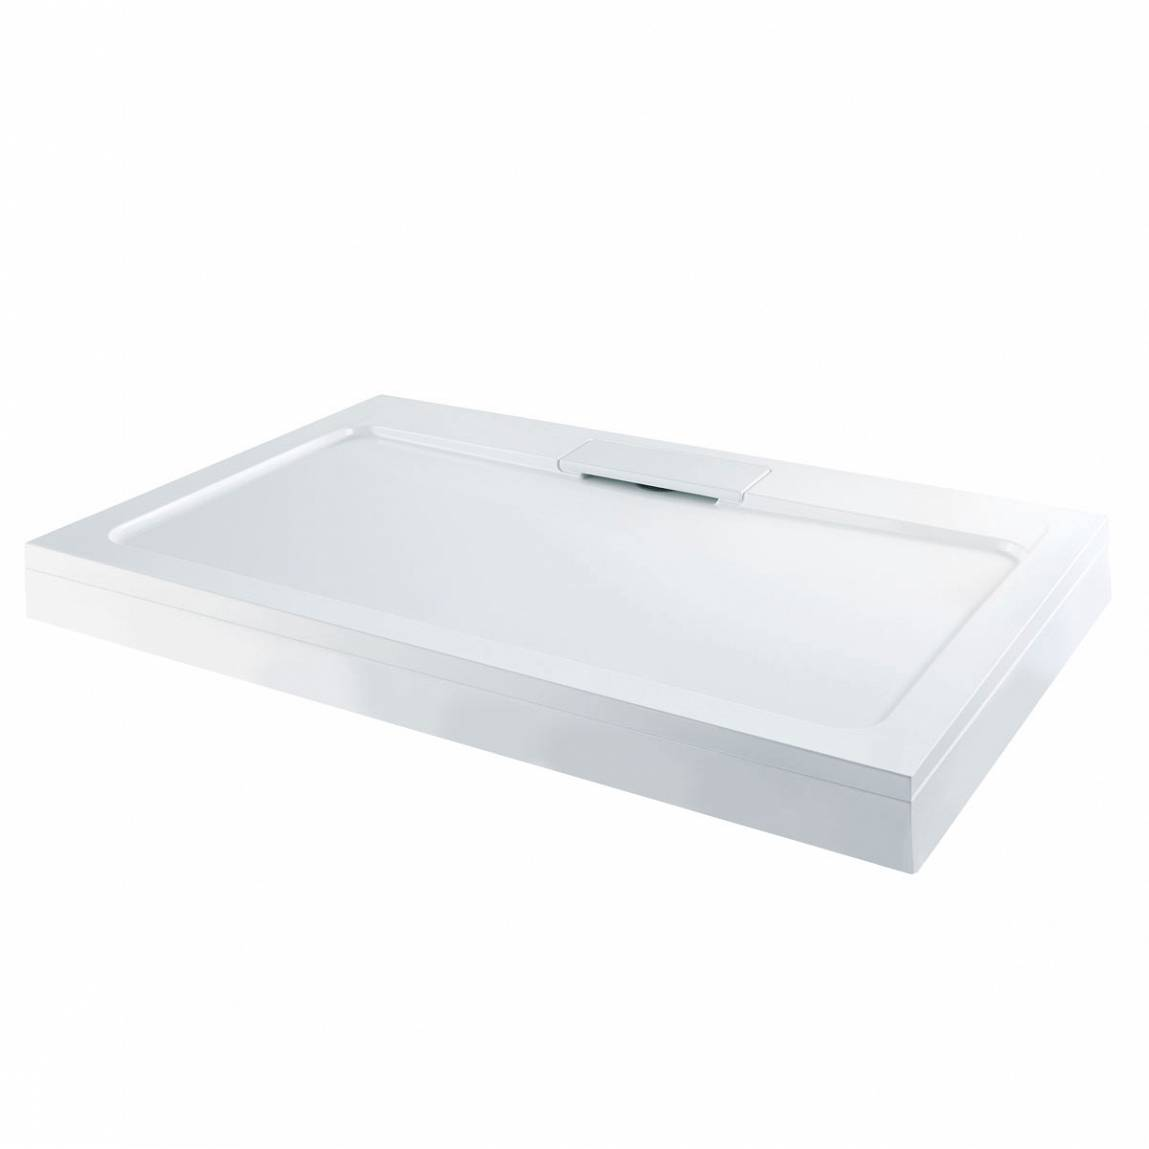 Image of Designer Rectangular Stone Shower Tray & Riser Kit 1000 x 800